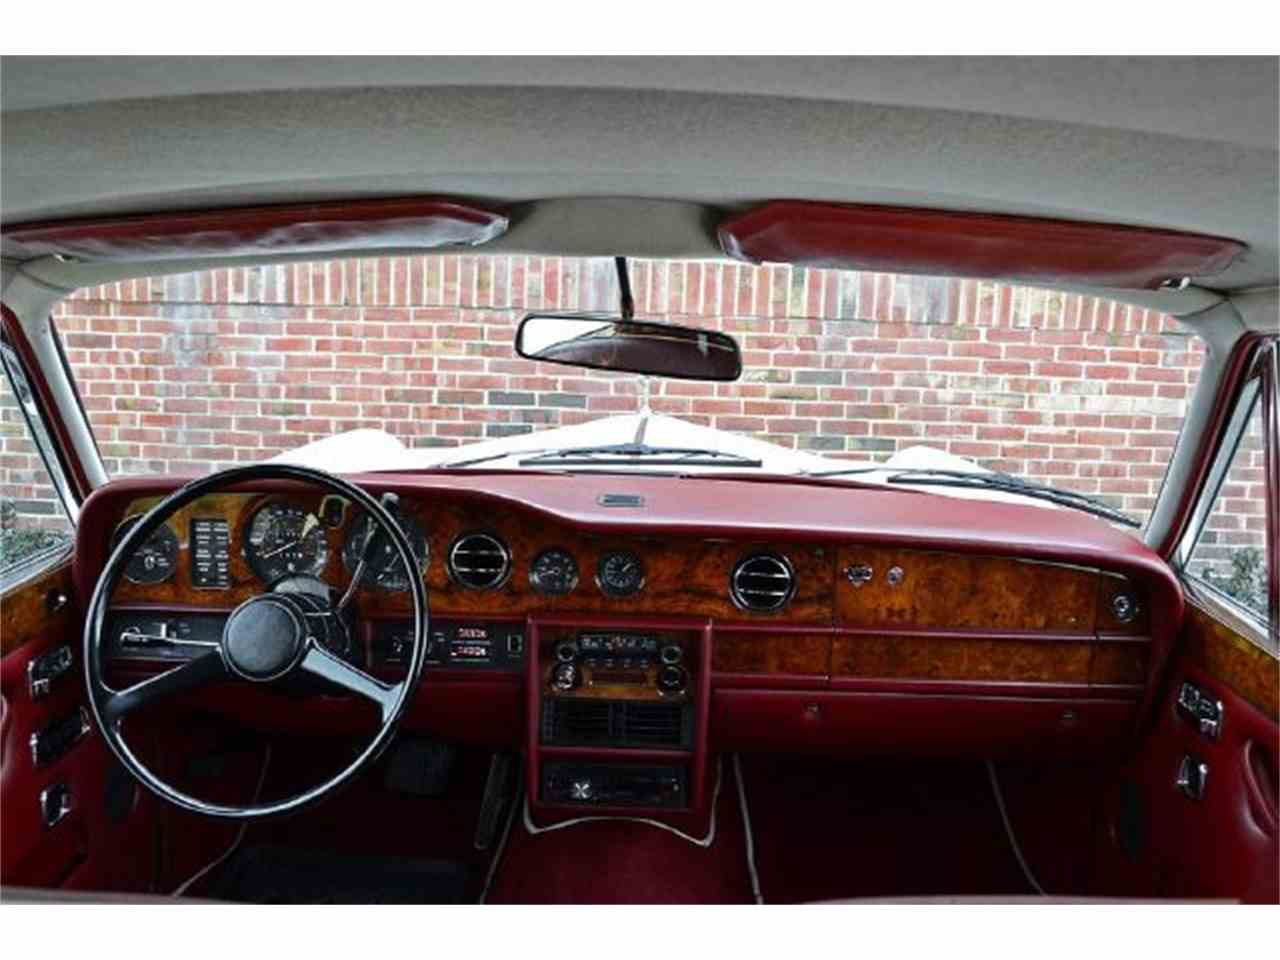 Large Picture of '73 Rolls-Royce Silver Shadow located in Illinois Auction Vehicle Offered by Park-Ward Motors - A949